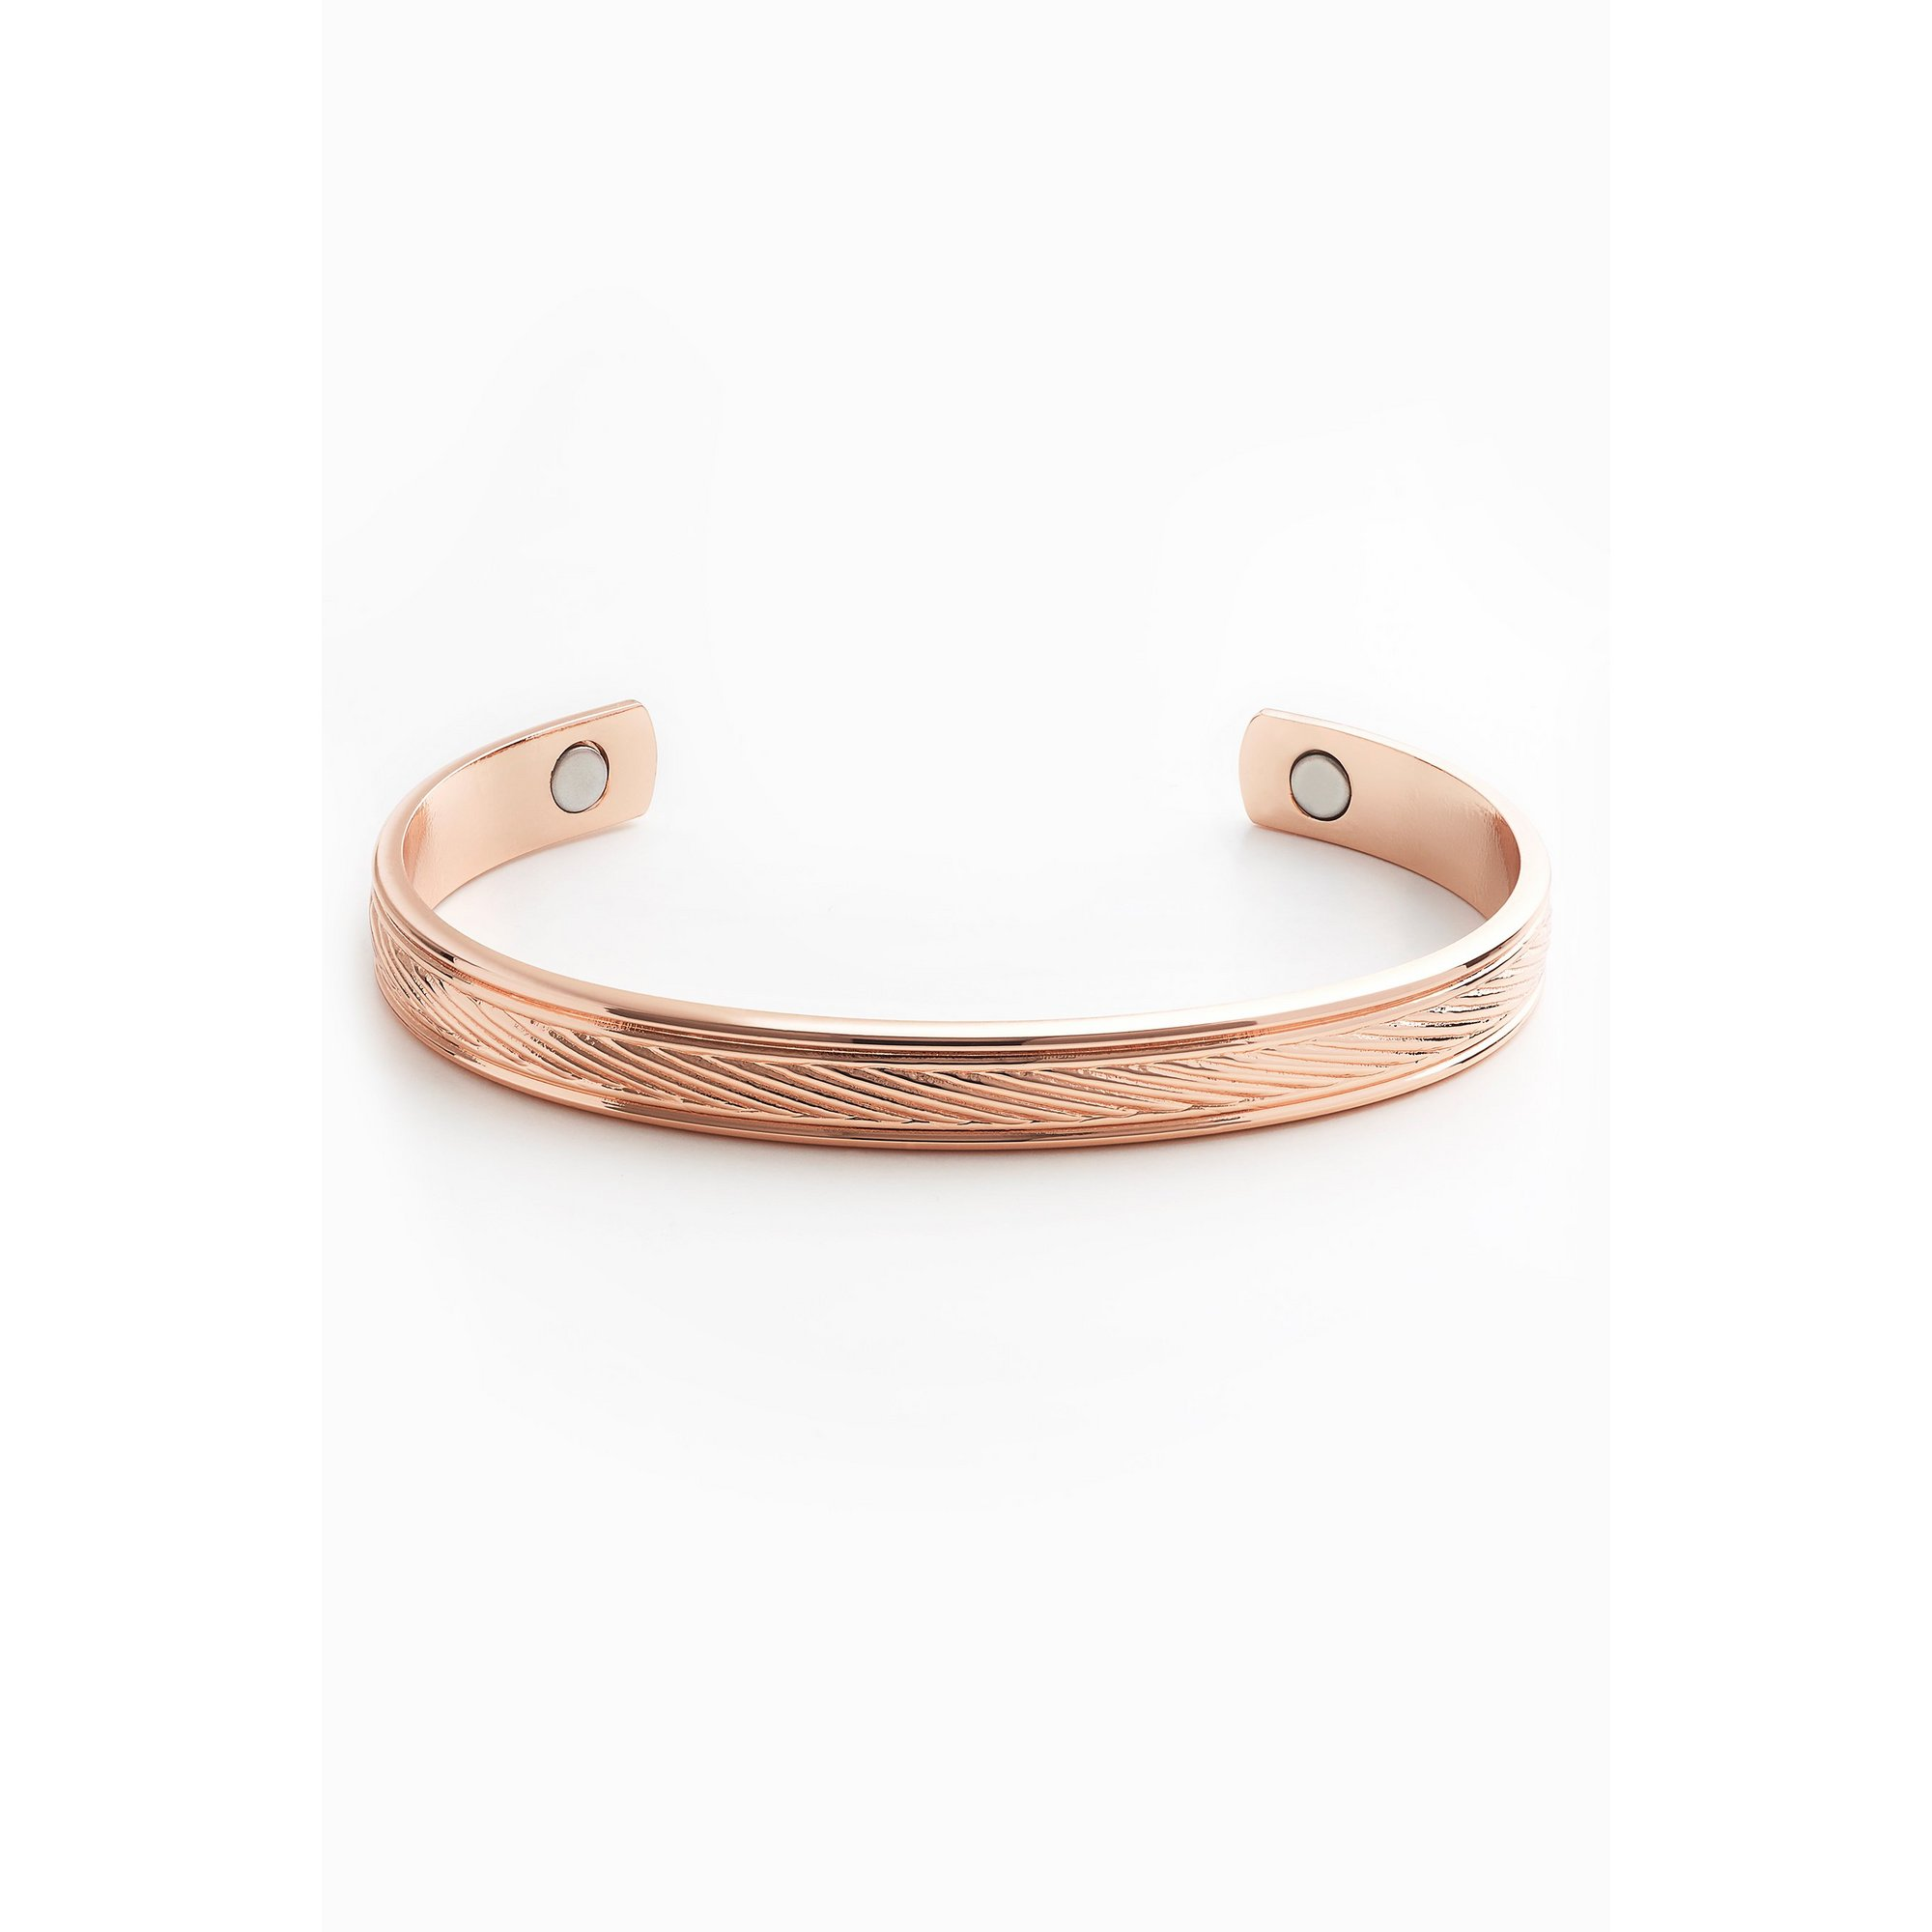 Image of Copperfield Copper Bangle